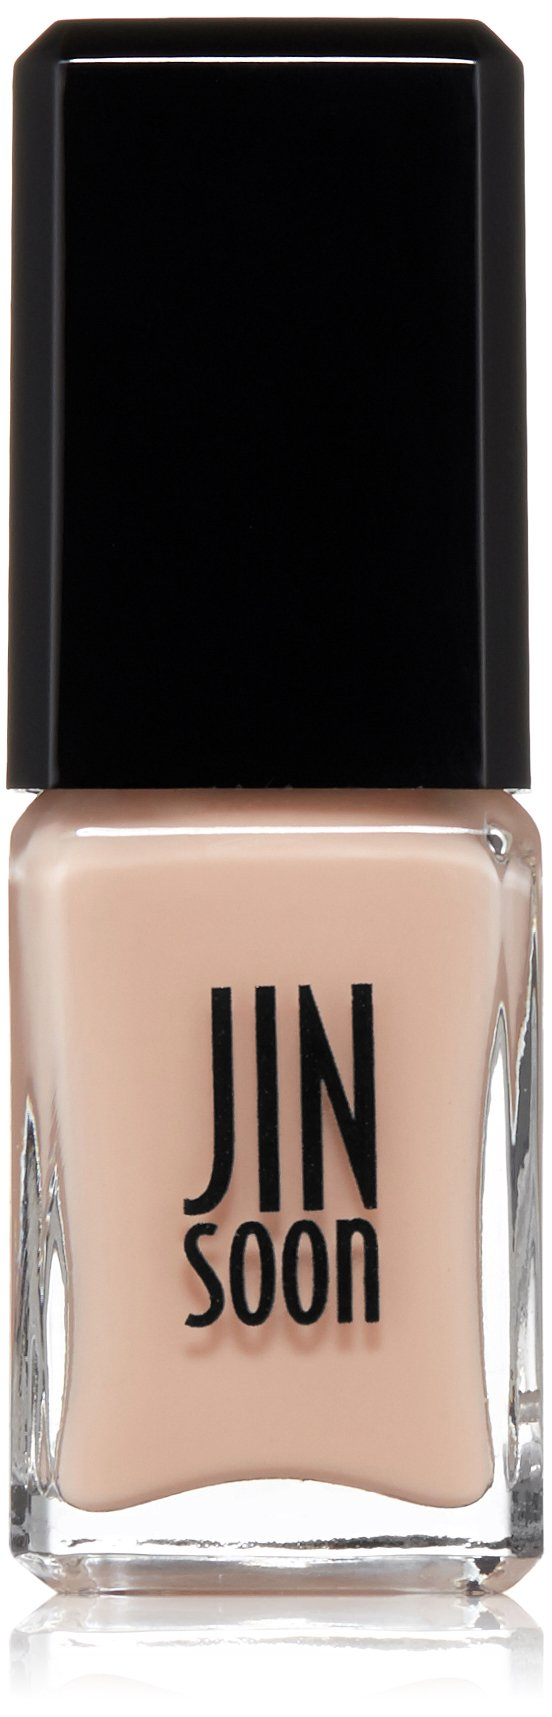 JINsoon Quintessential Collection Nail Lacquer Muse